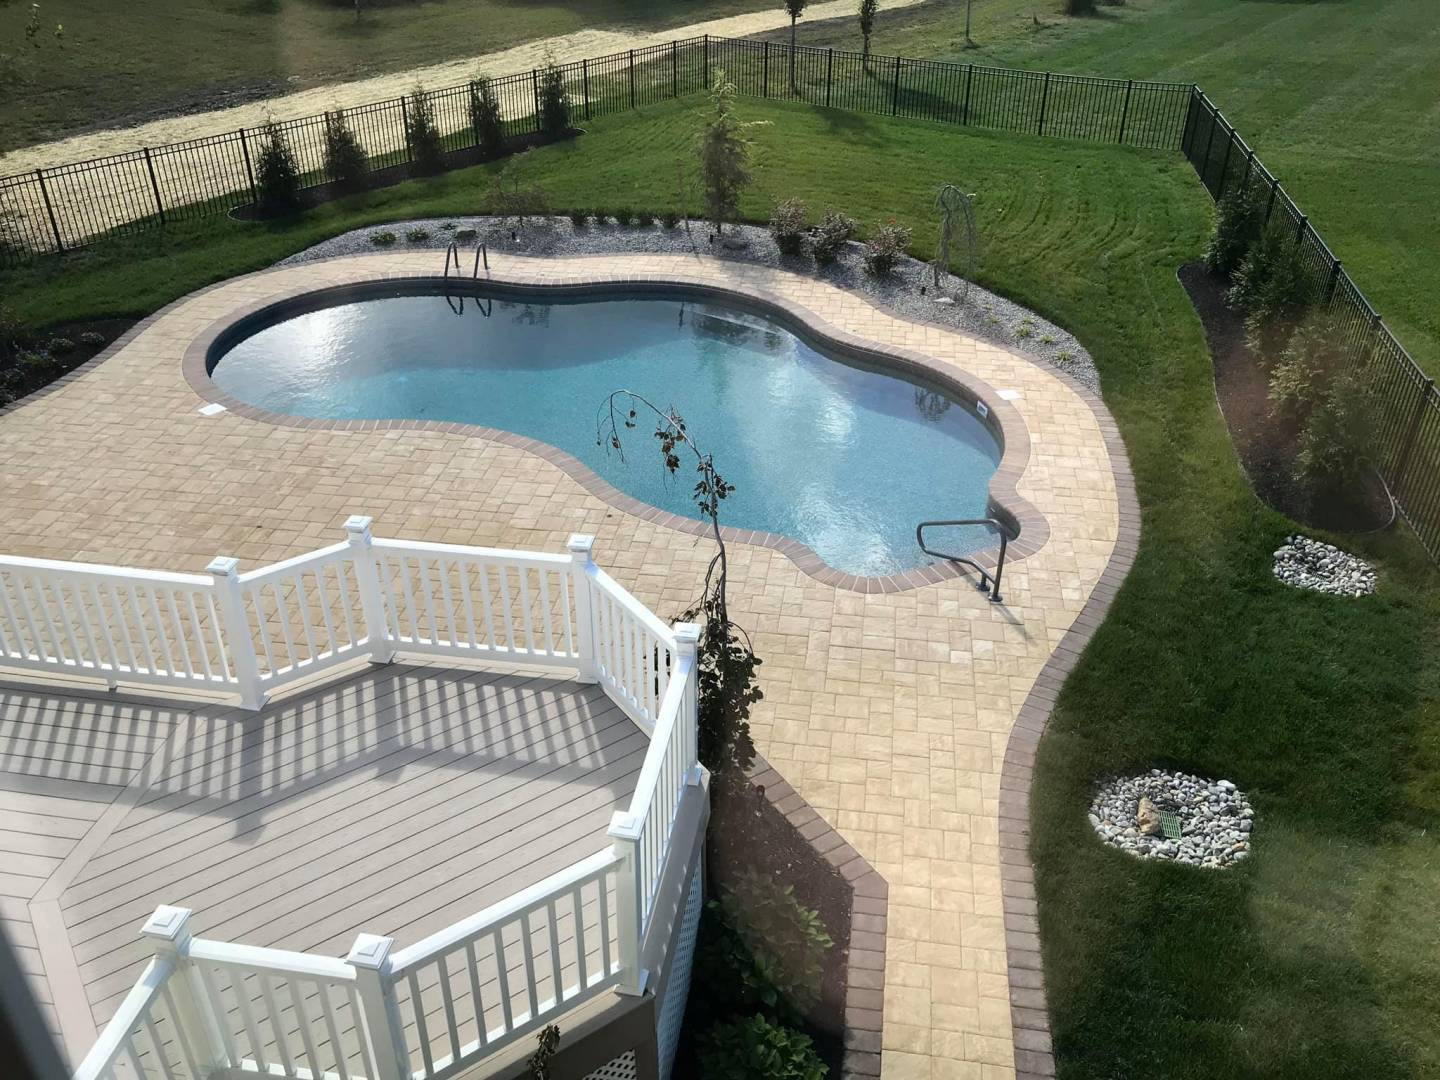 Residential Poolscaping & Pool Patio Design